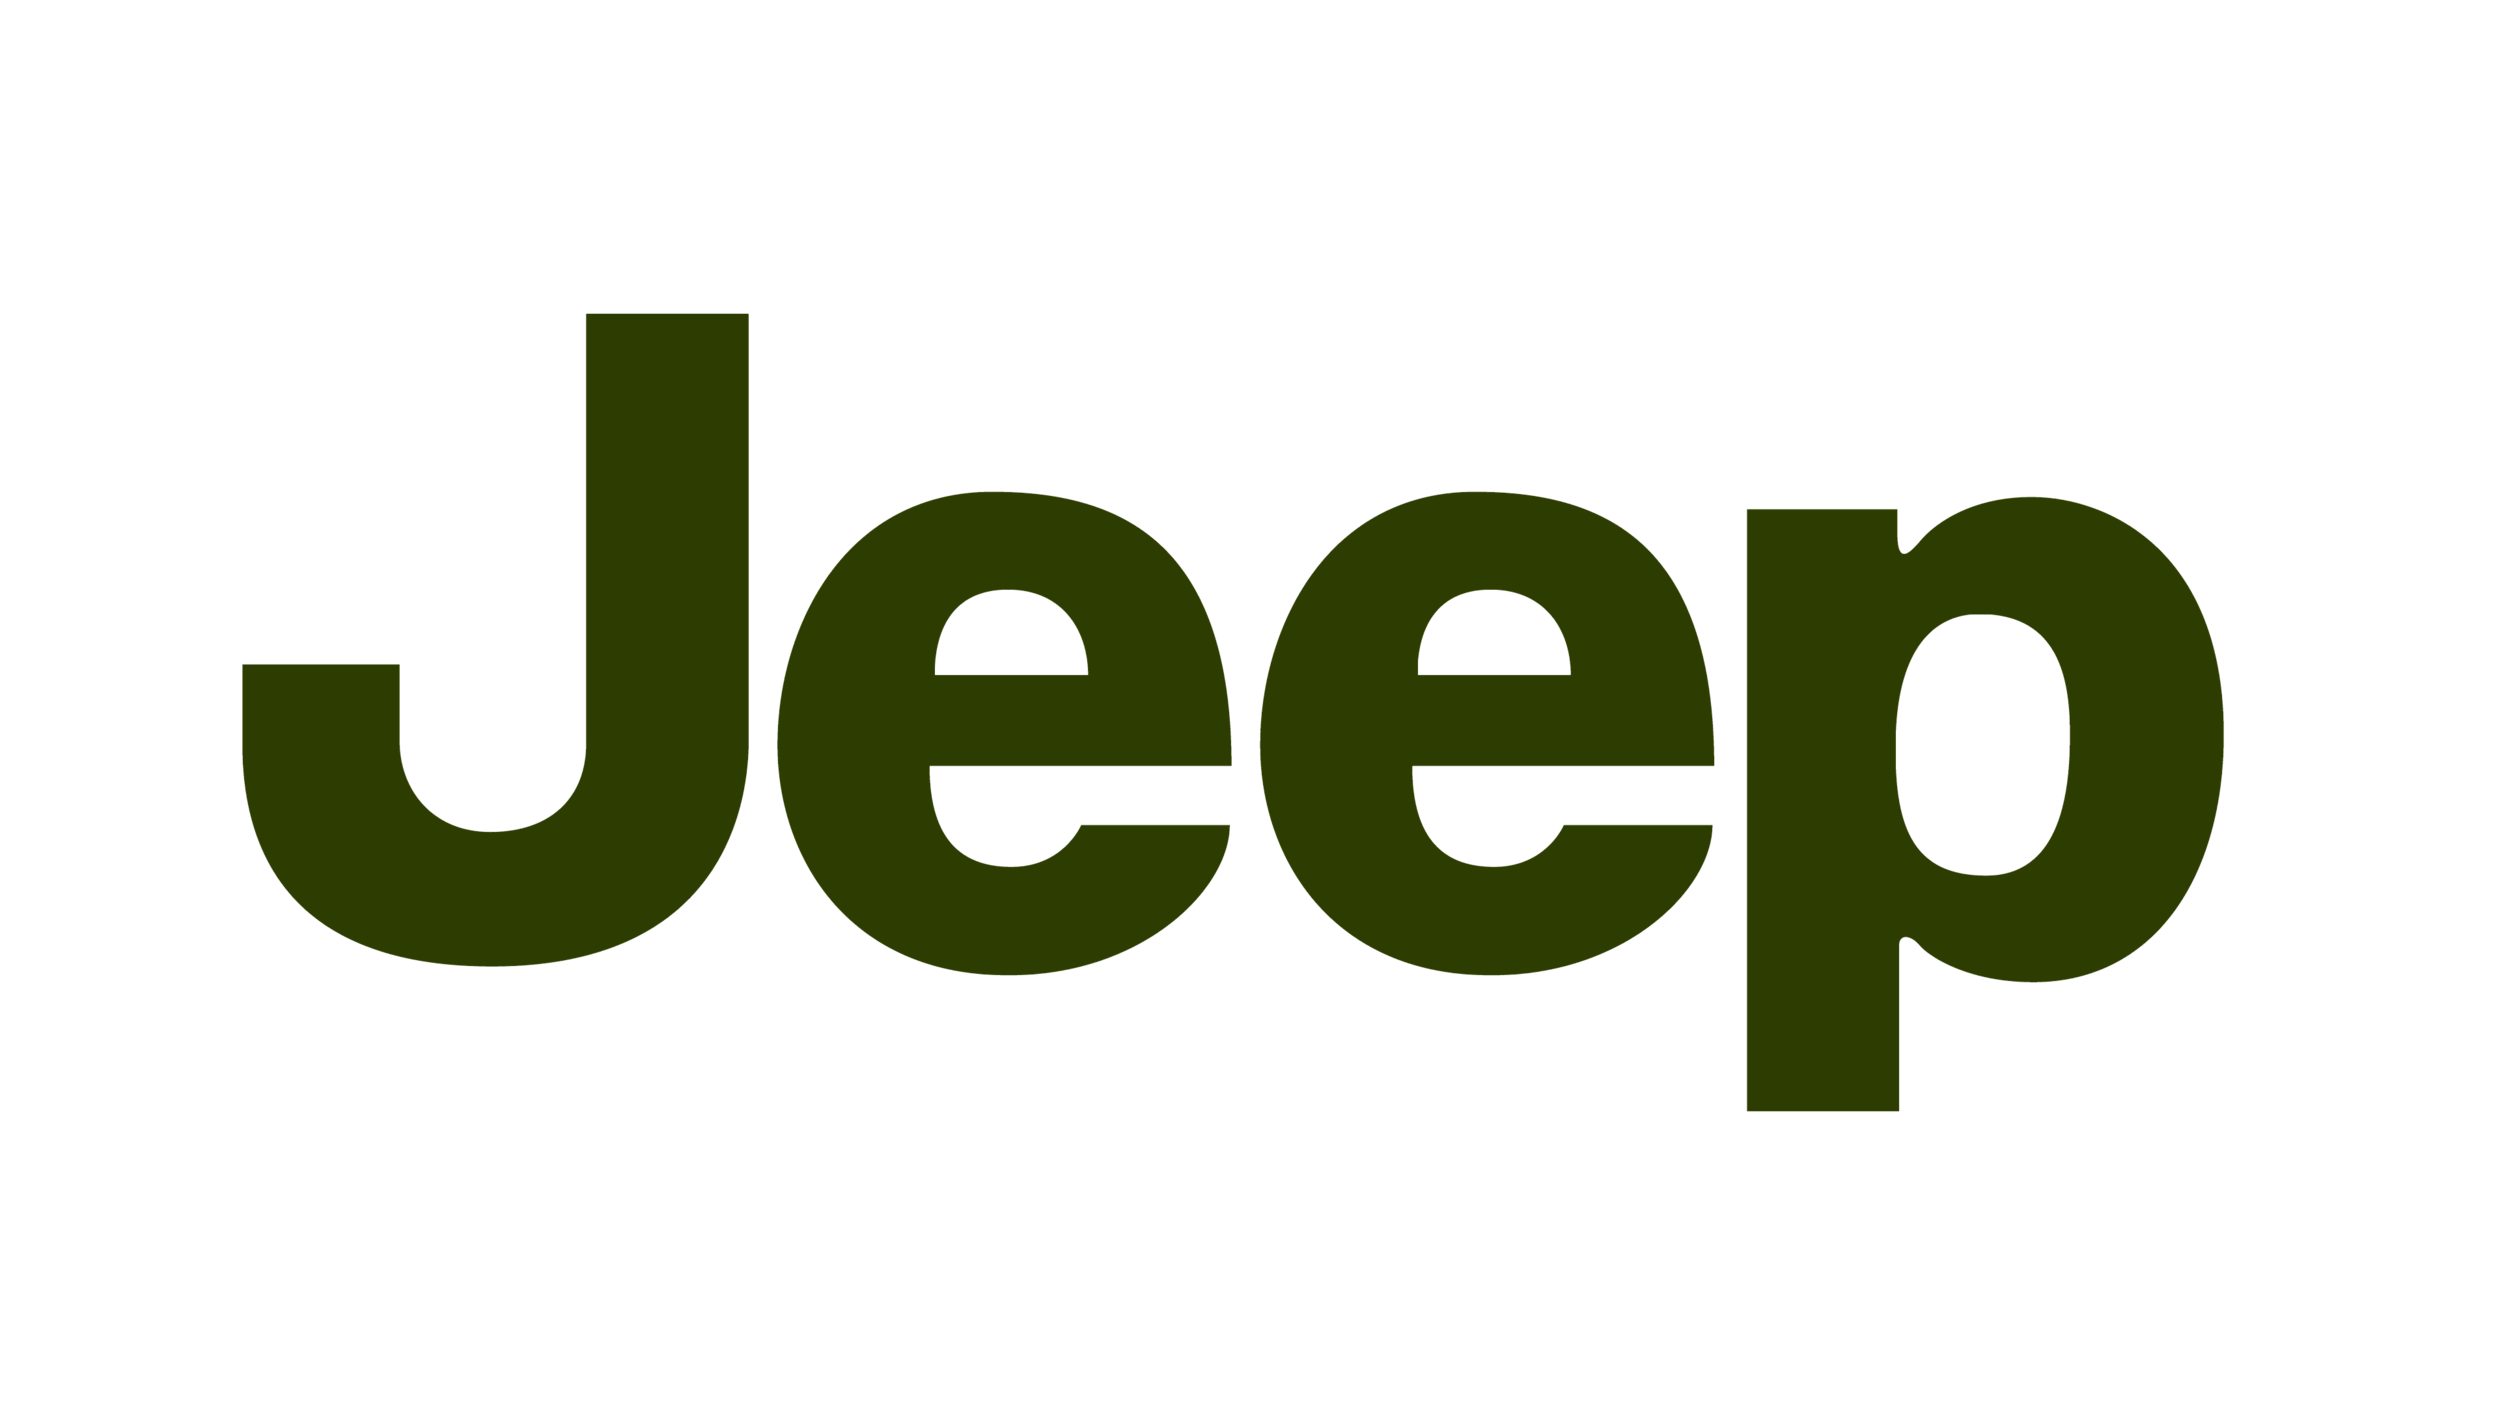 Jeep-logo-green-3840x2160.png